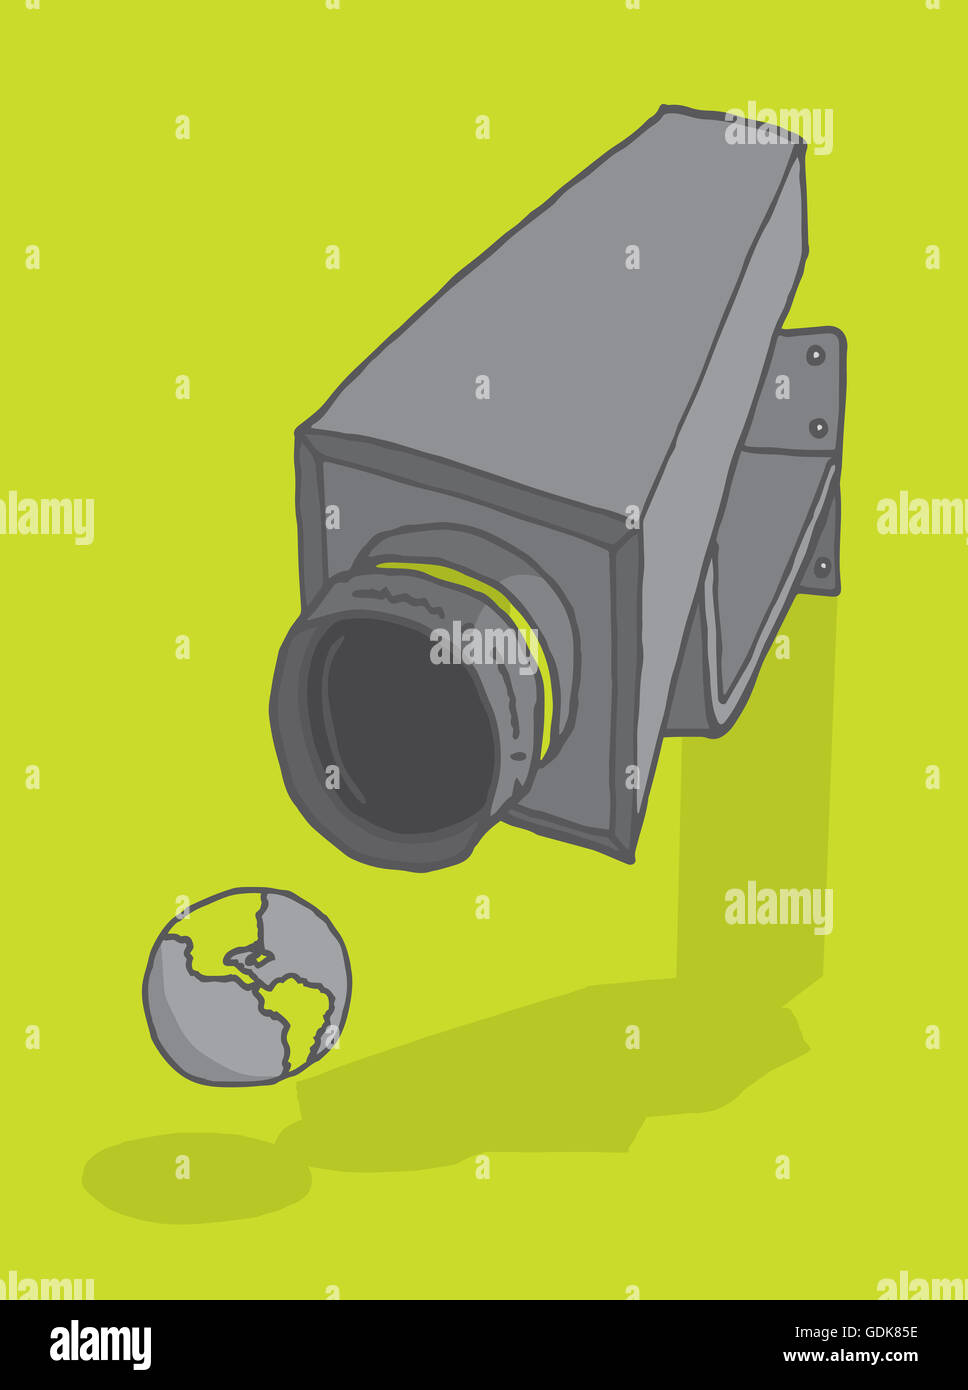 Cartoon illustration of a surveillance camera aiming at planet earth - Stock Image